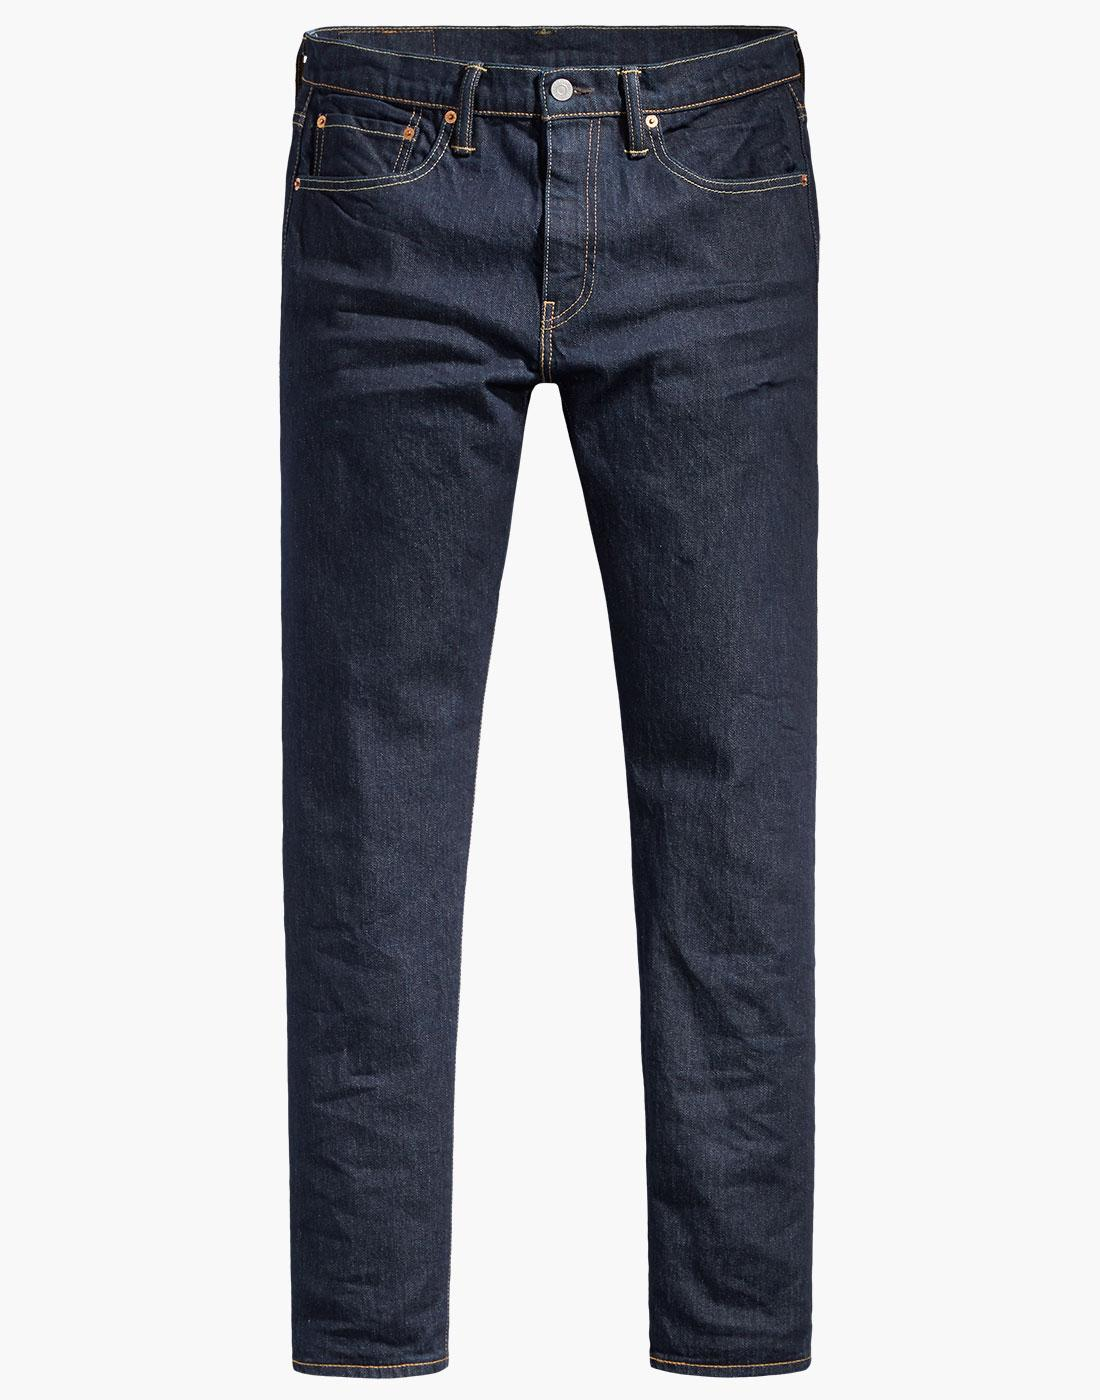 LEVI'S 502 Regular Tapered Denim Jeans CHAIN RINSE